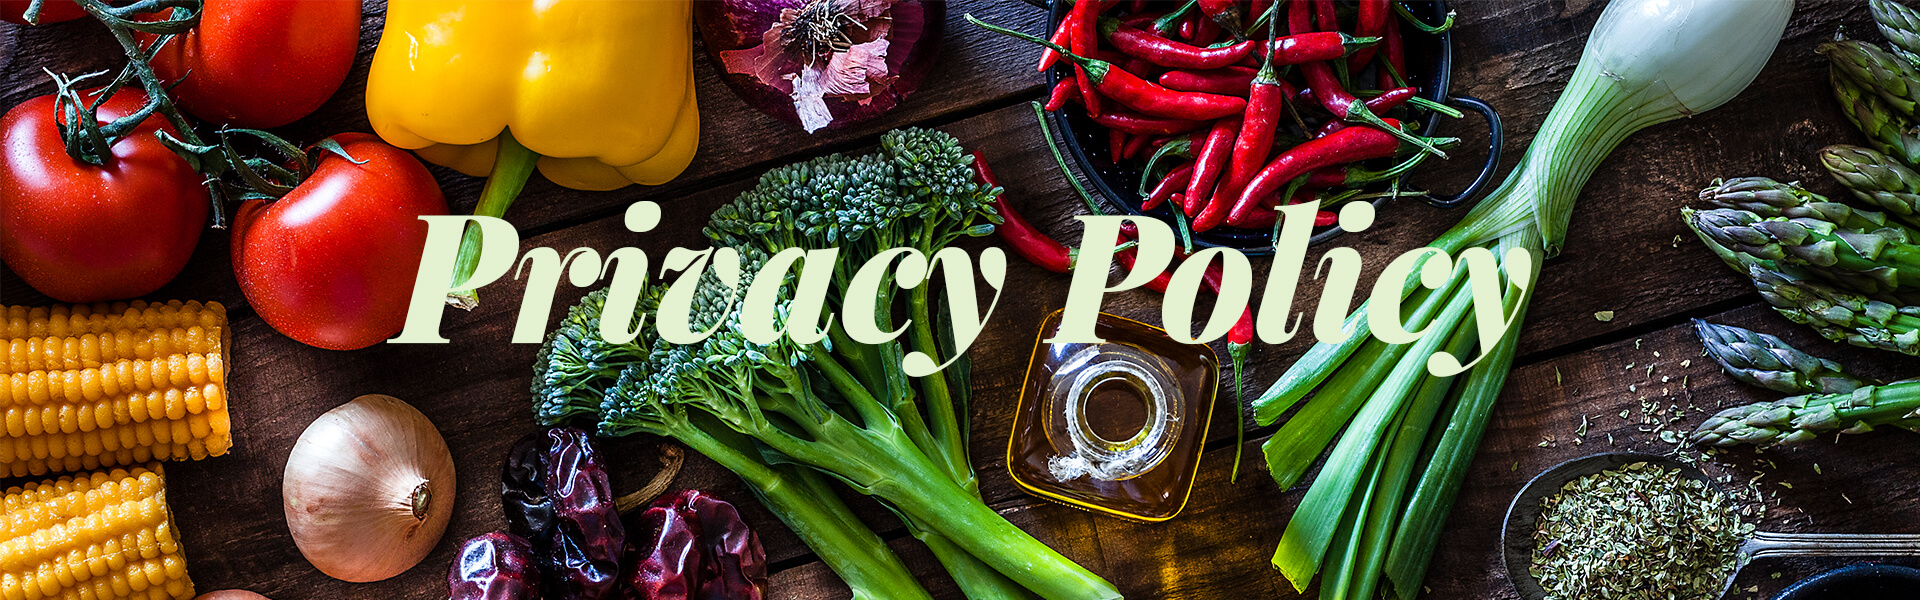 the market privacy policy